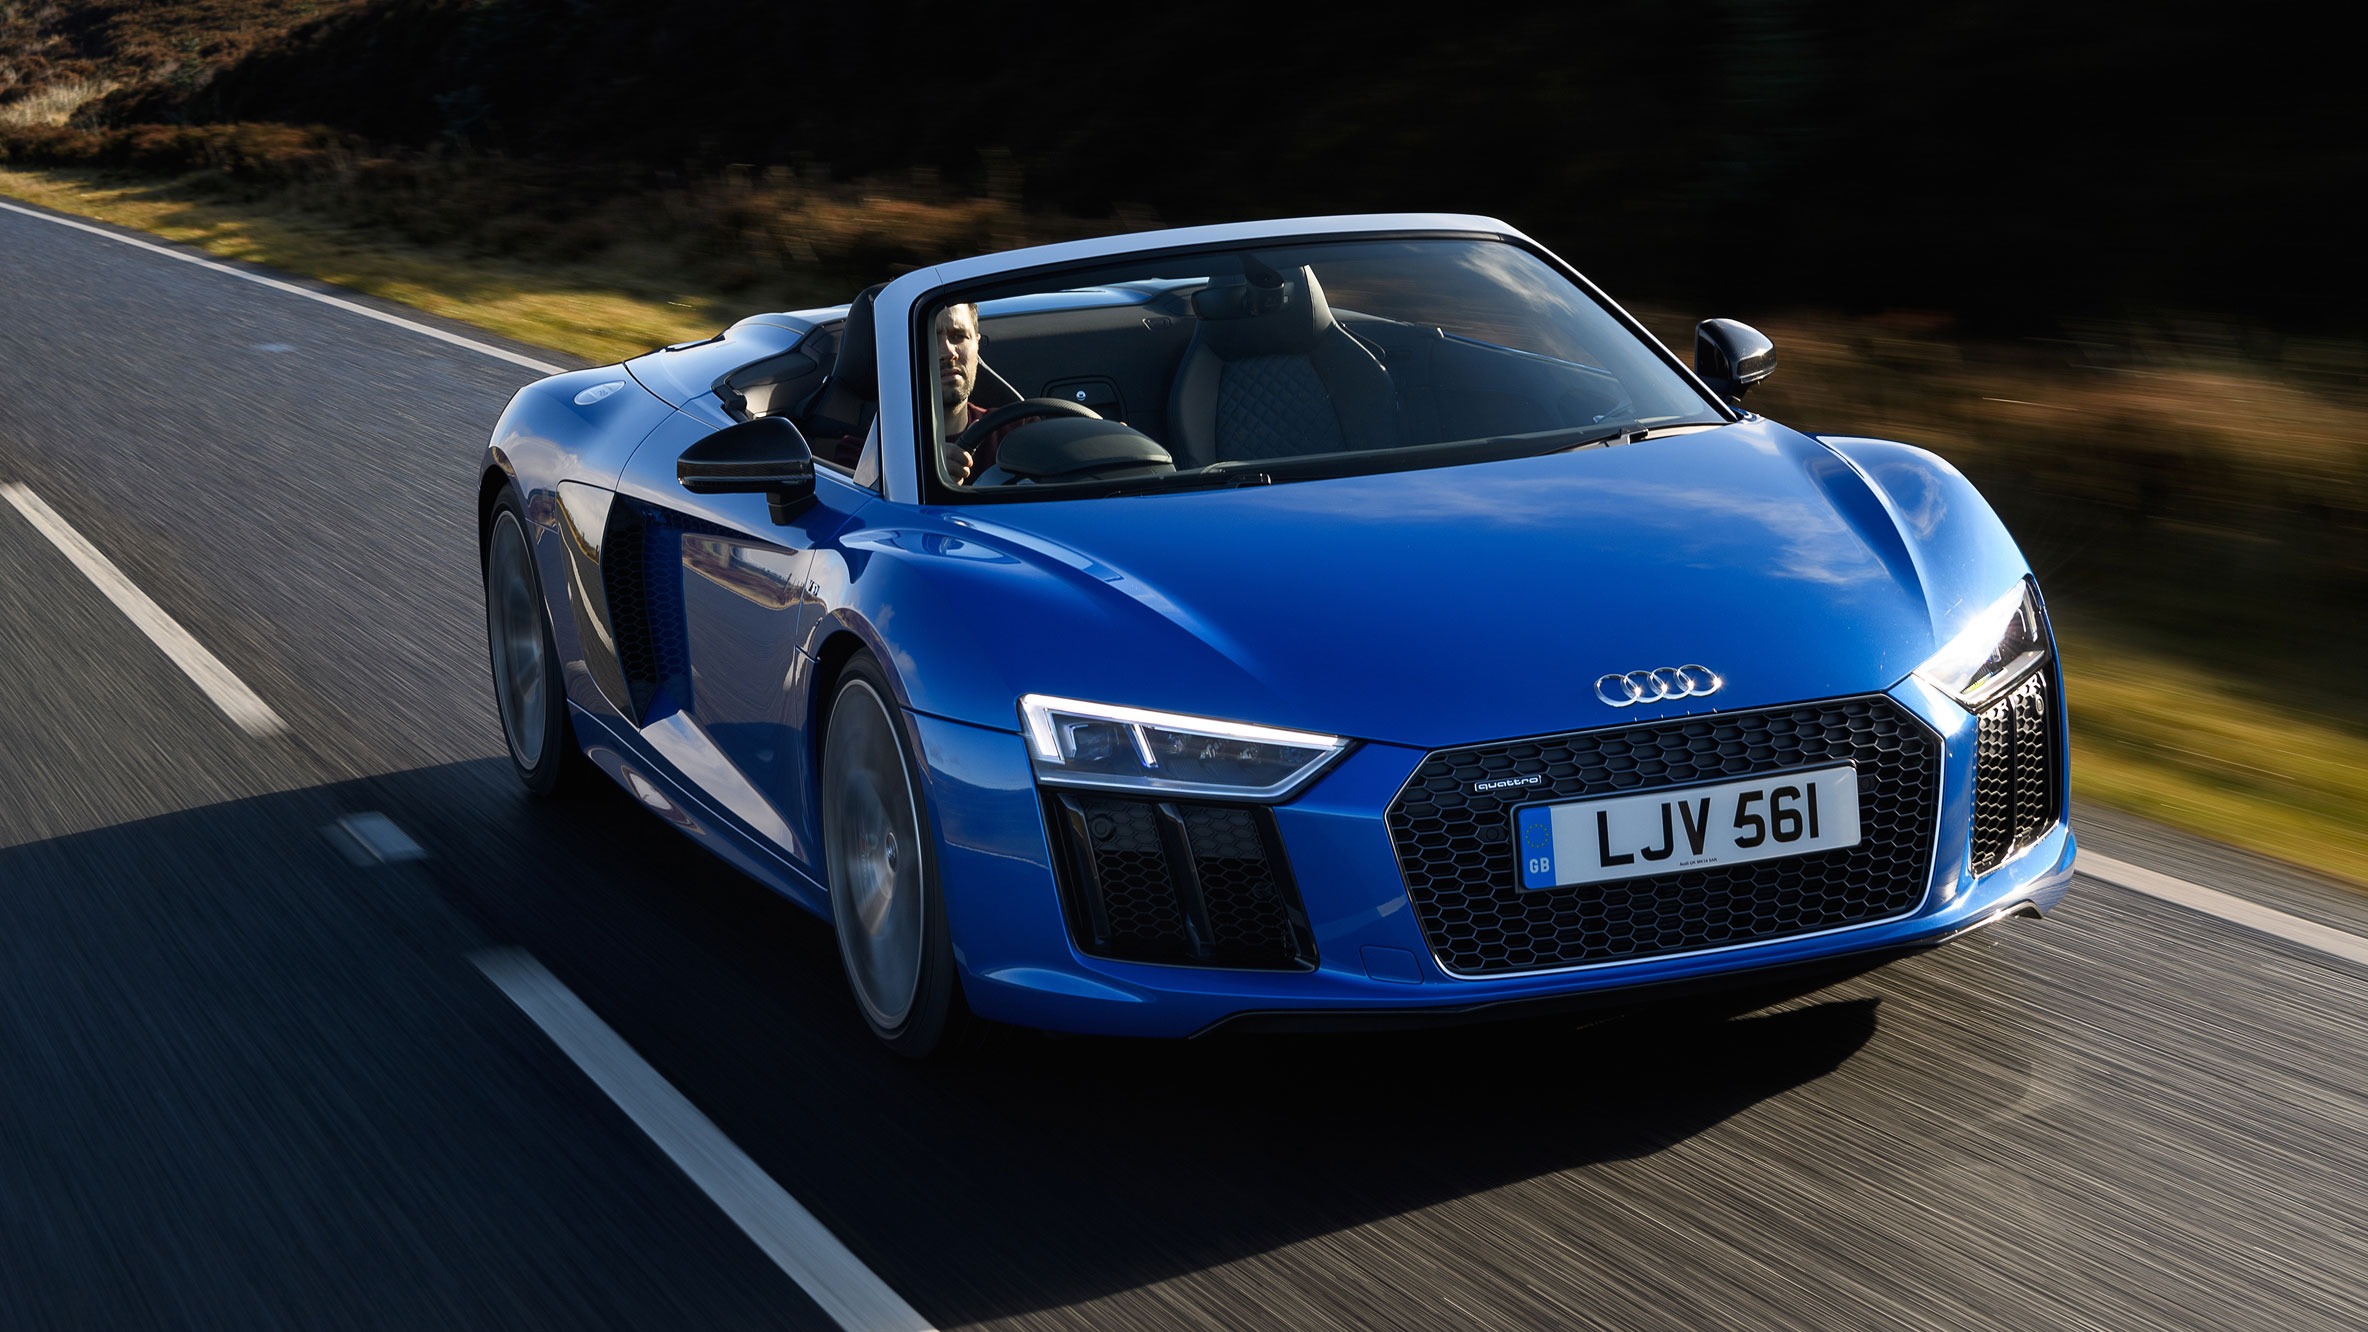 audi r8 spyder convertible 2016 review auto trader uk. Black Bedroom Furniture Sets. Home Design Ideas